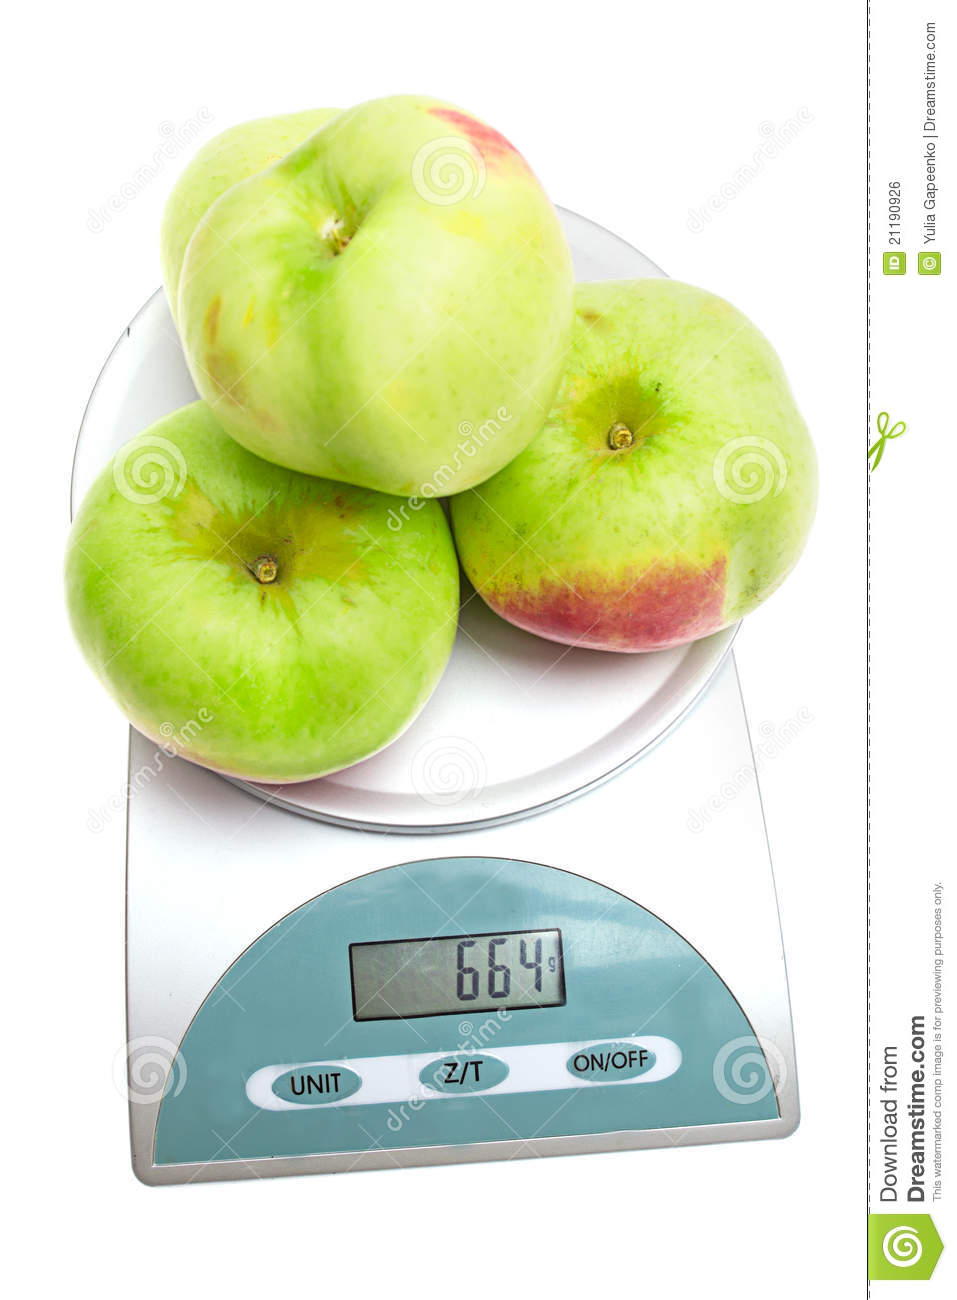 Apples on the scales isolated